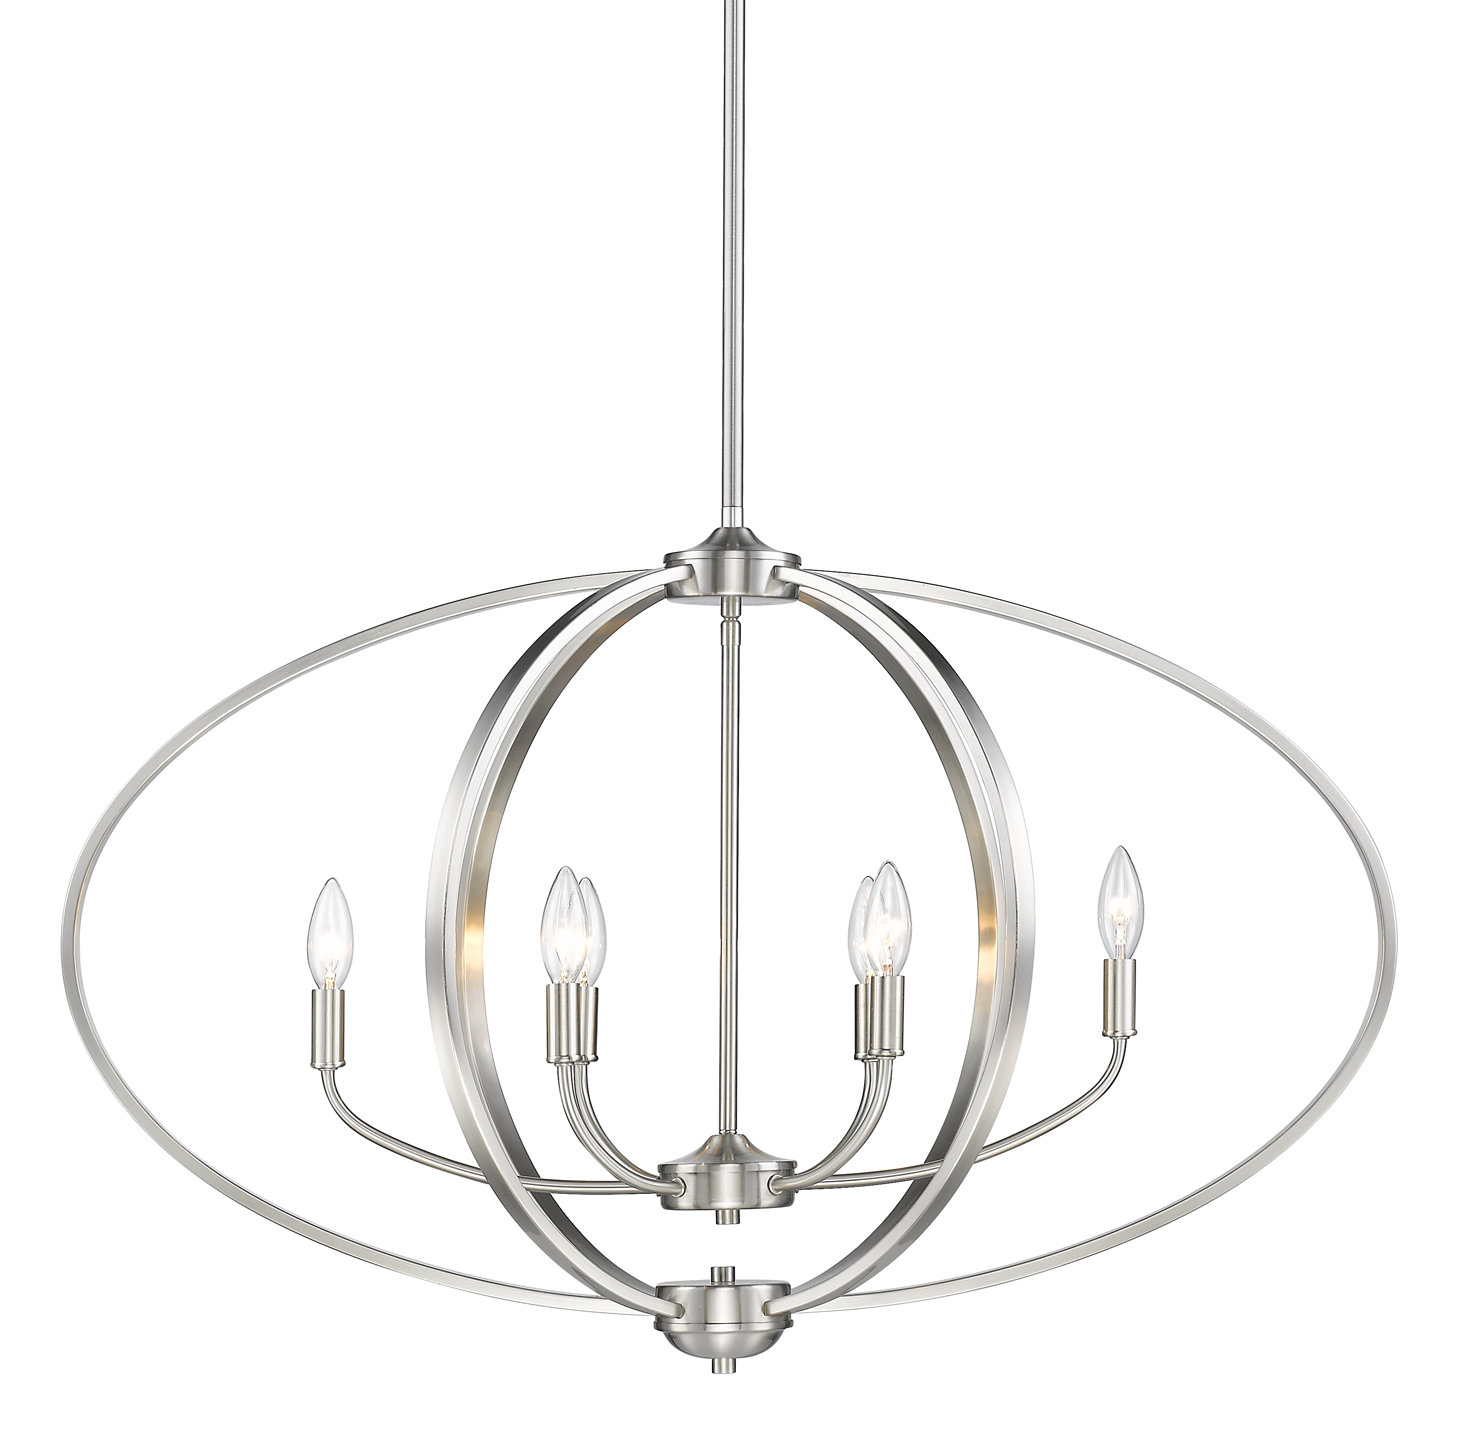 Joon 6 Light Globe Chandeliers Throughout Most Popular Earlene 6 Light Globe Chandelier (View 11 of 20)